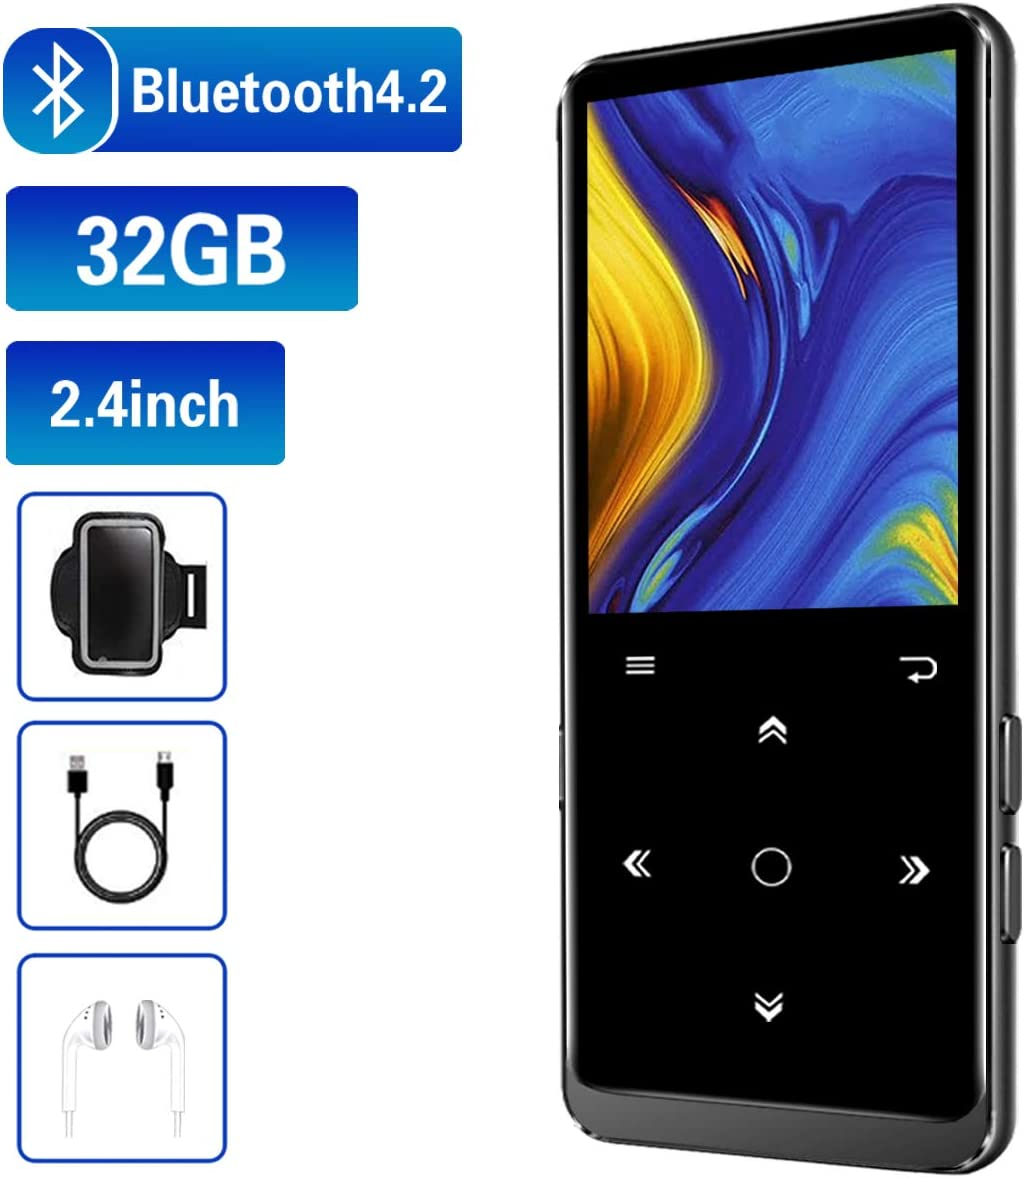 32GB Reproductor  MP3, con Bluetooth 4.2, con Radio FM, Grabación, Pantalla de 2.4